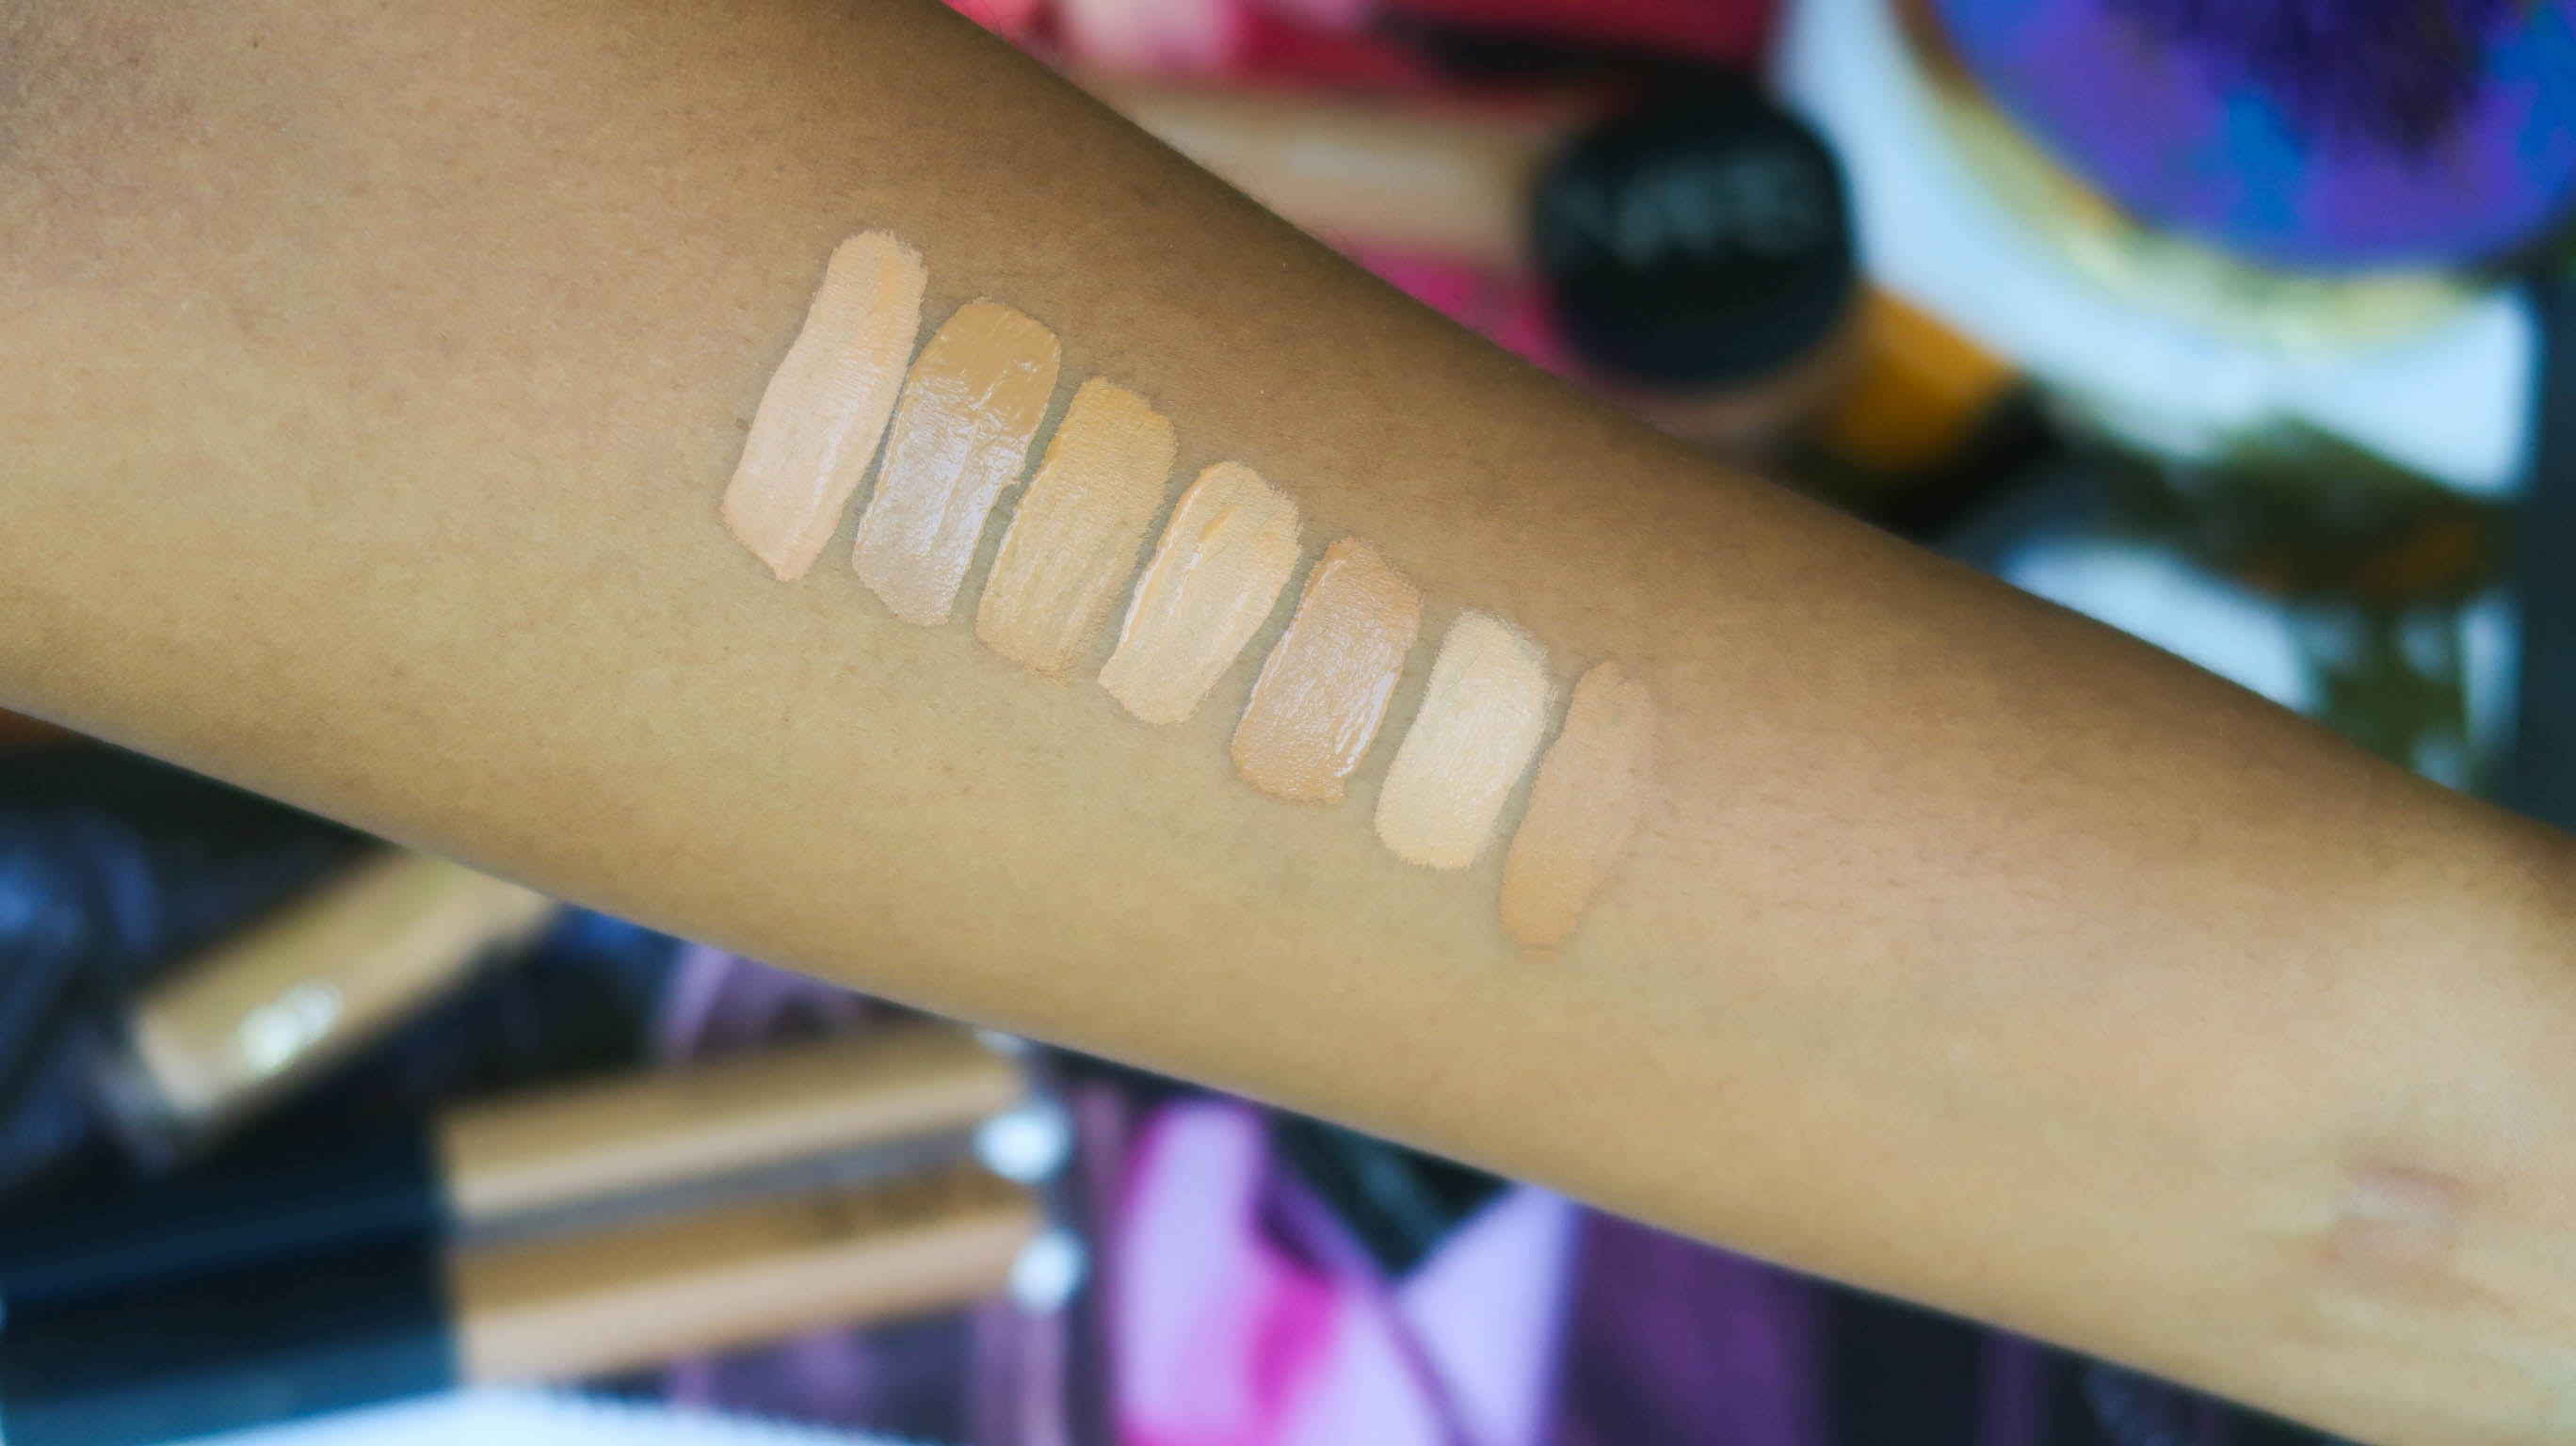 Concealer swatches for dark skin